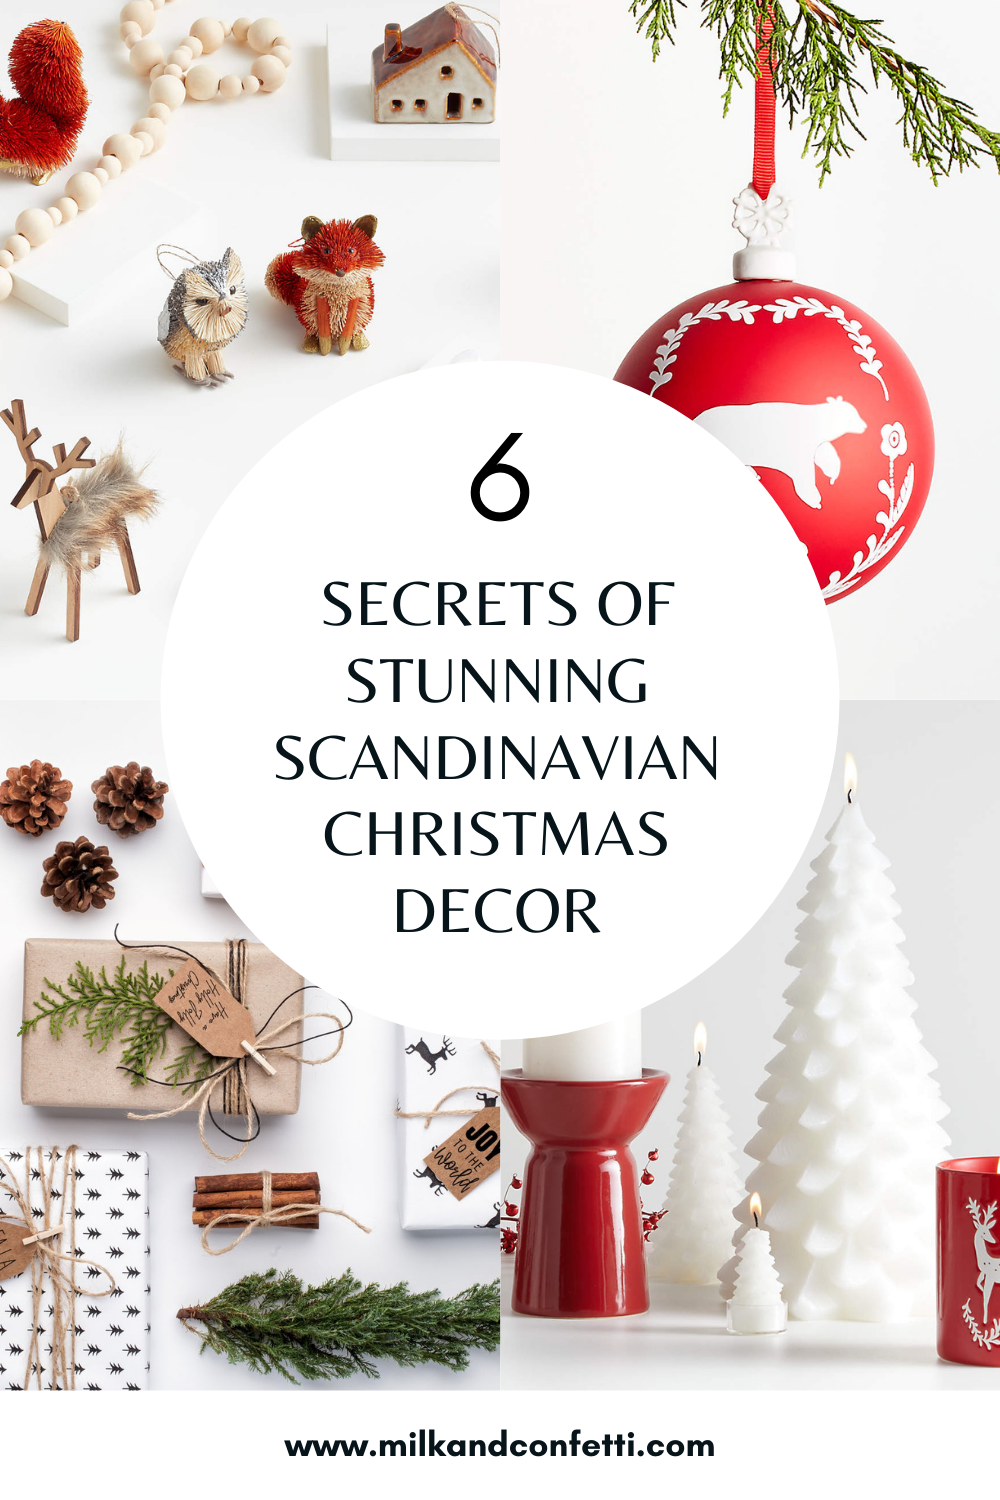 A wooden beaded garland laying amongst red and white Scandinavian inspired Christmas ornaments and decor in the shape of forest animals like squirrels, foxes, deer and rabbits for a minimal and modern holiday decor look.